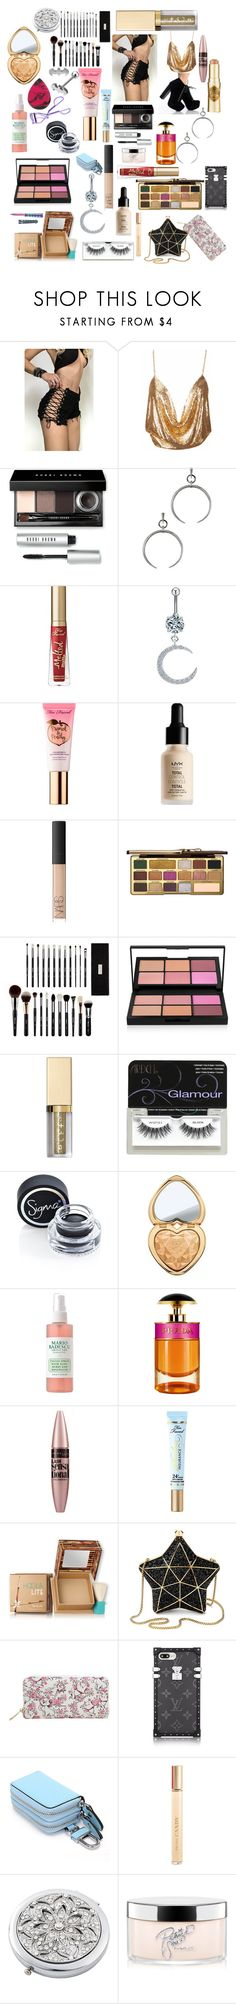 """Club time"" by crystaldieppa on Polyvore featuring Bobbi Brown Cosmetics, Luv Aj, Too Faced Cosmetics, Sephora Collection, NYX, NARS Cosmetics, Morphe, Stila, Ardell and Sigma"